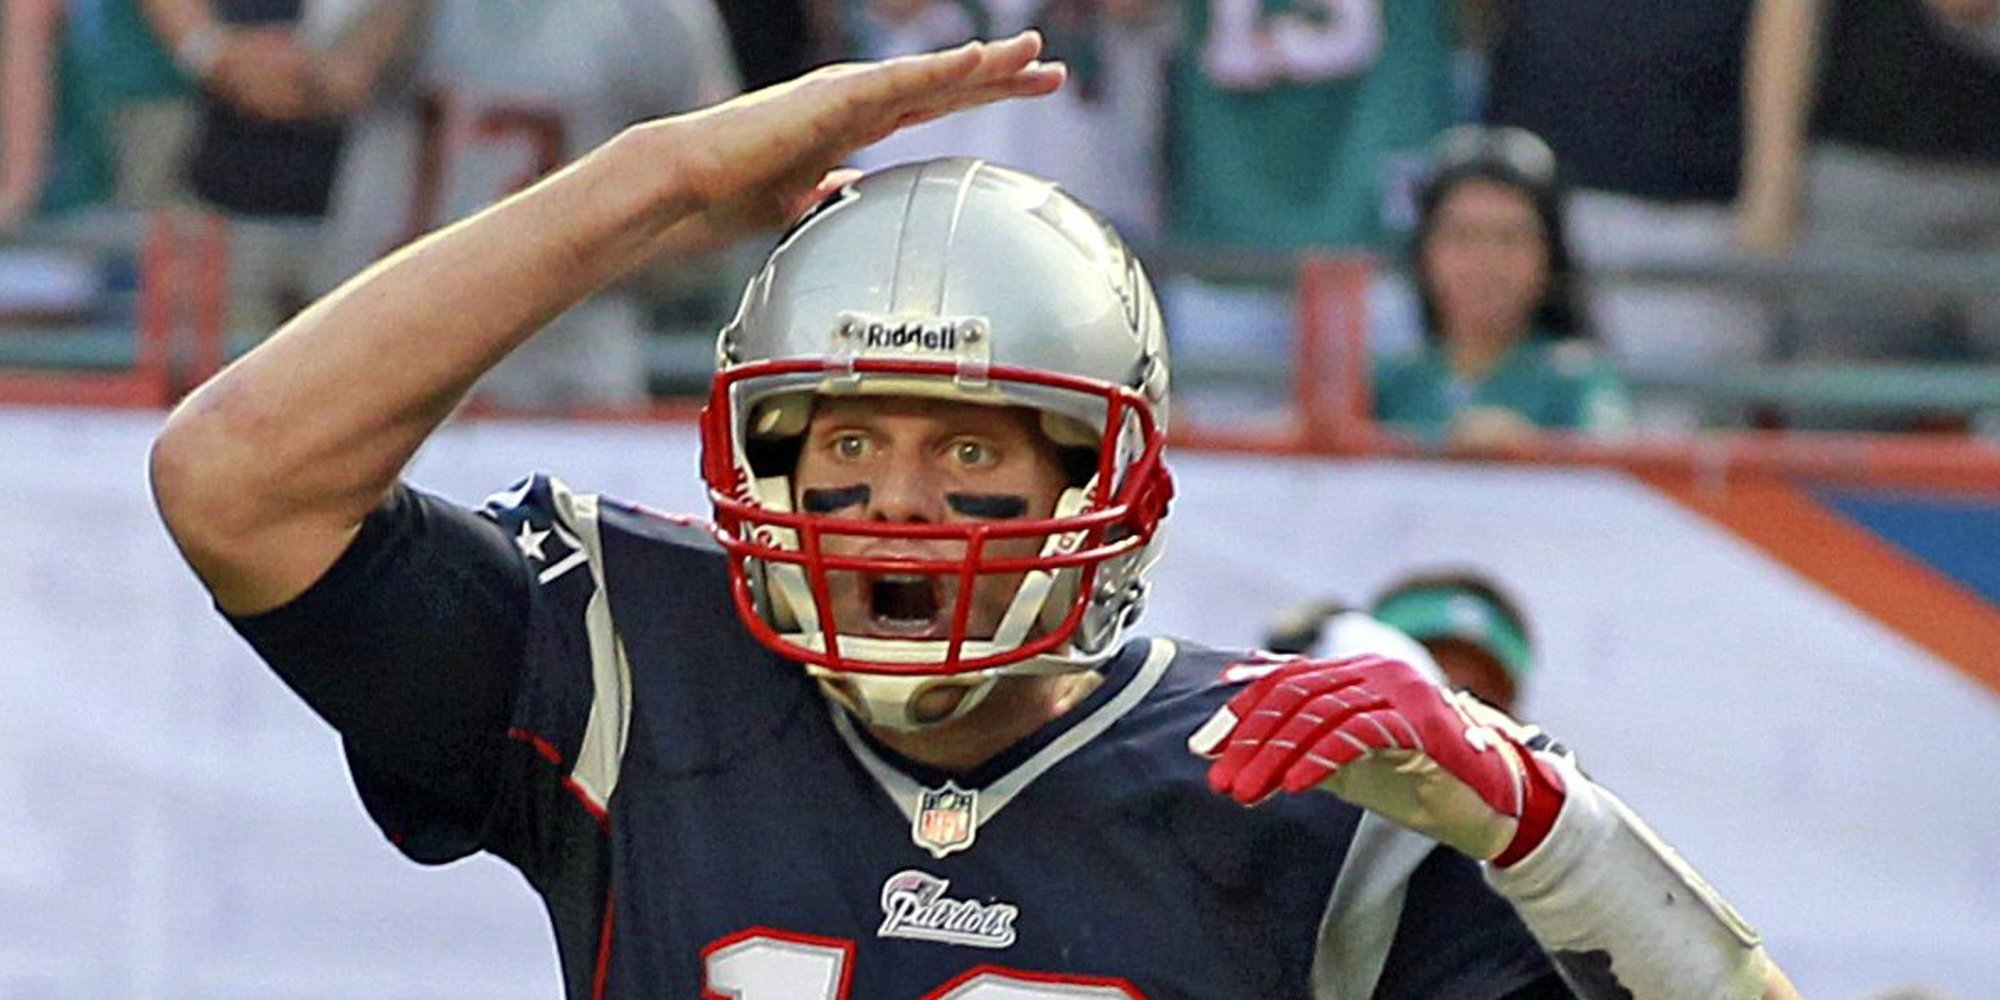 Go Patriots >> Tom Brady Lamented 'S****y Plays' After Interception Sealed Patriots' Loss To Dolphins (VIDEOS)